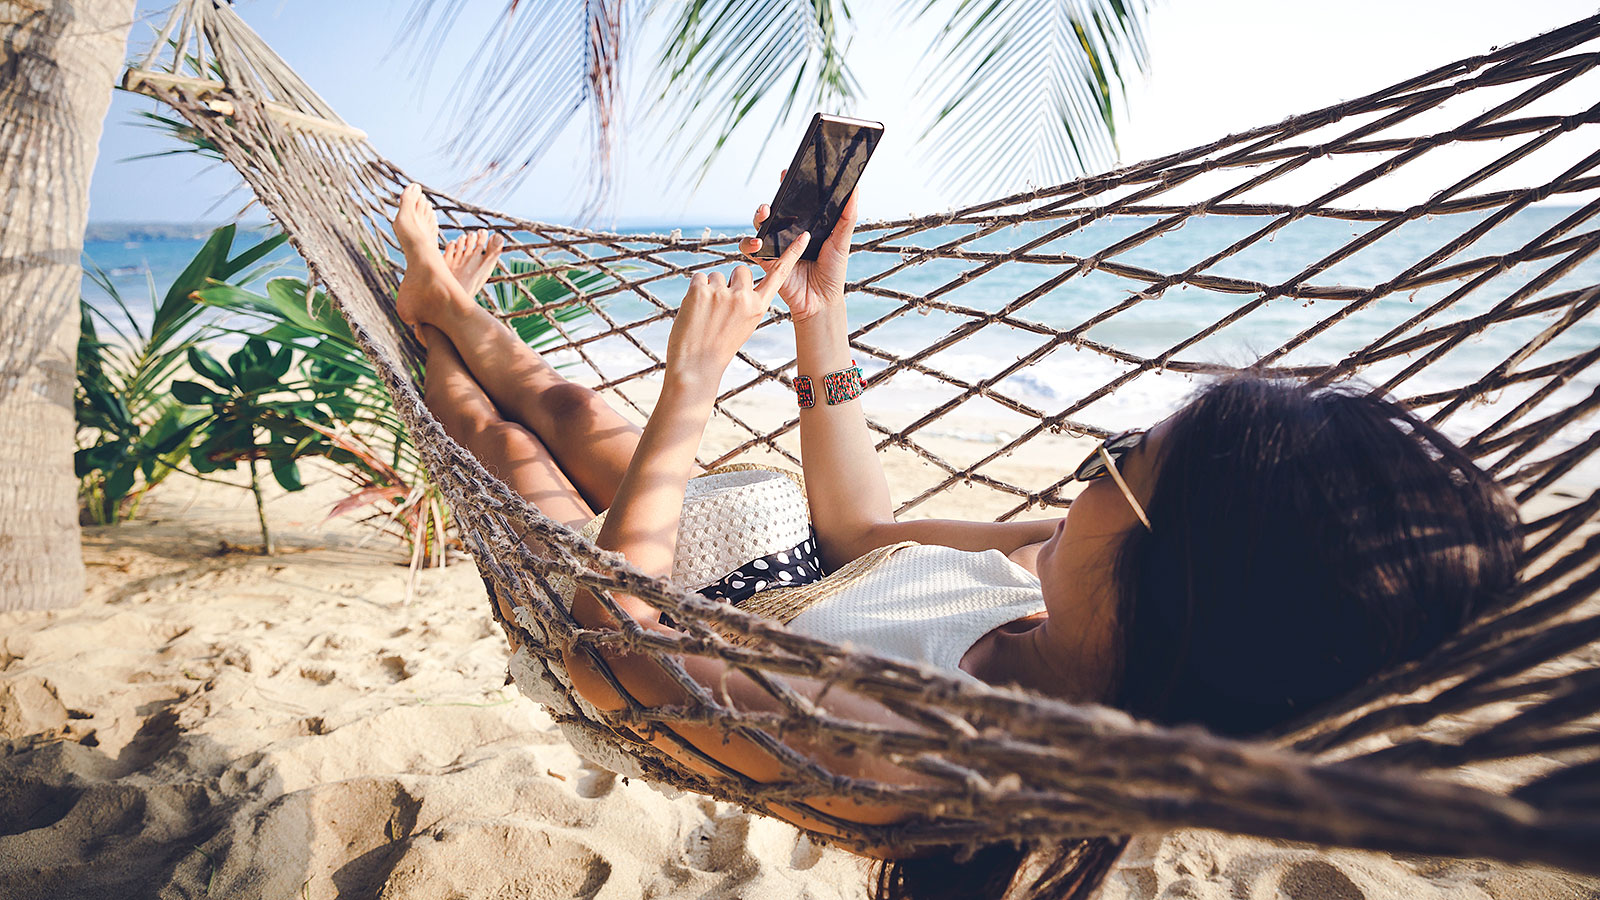 Half of Americans are preoccupied with one thing (and one thing only) when they vacation